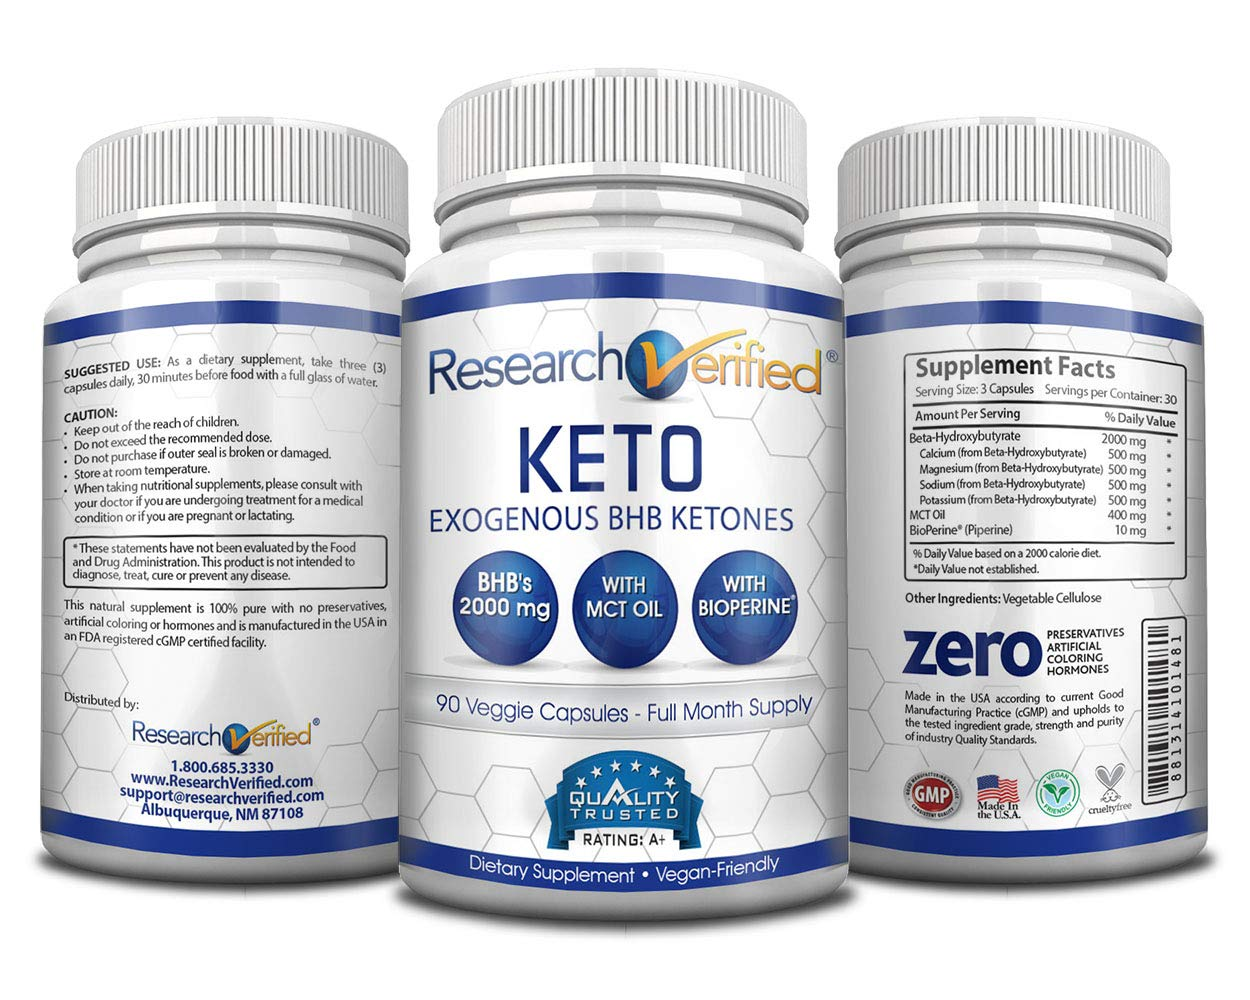 Research Verified Keto - Vegan Keto Supplement with 4 Exogenous Ketone Salts (Calcium, Sodium, Magnesium and Potassium) and MCT Oil to Boost Energy, Weight Loss and Focus in Ketosis - 6 Bottles by Research Verified (Image #4)